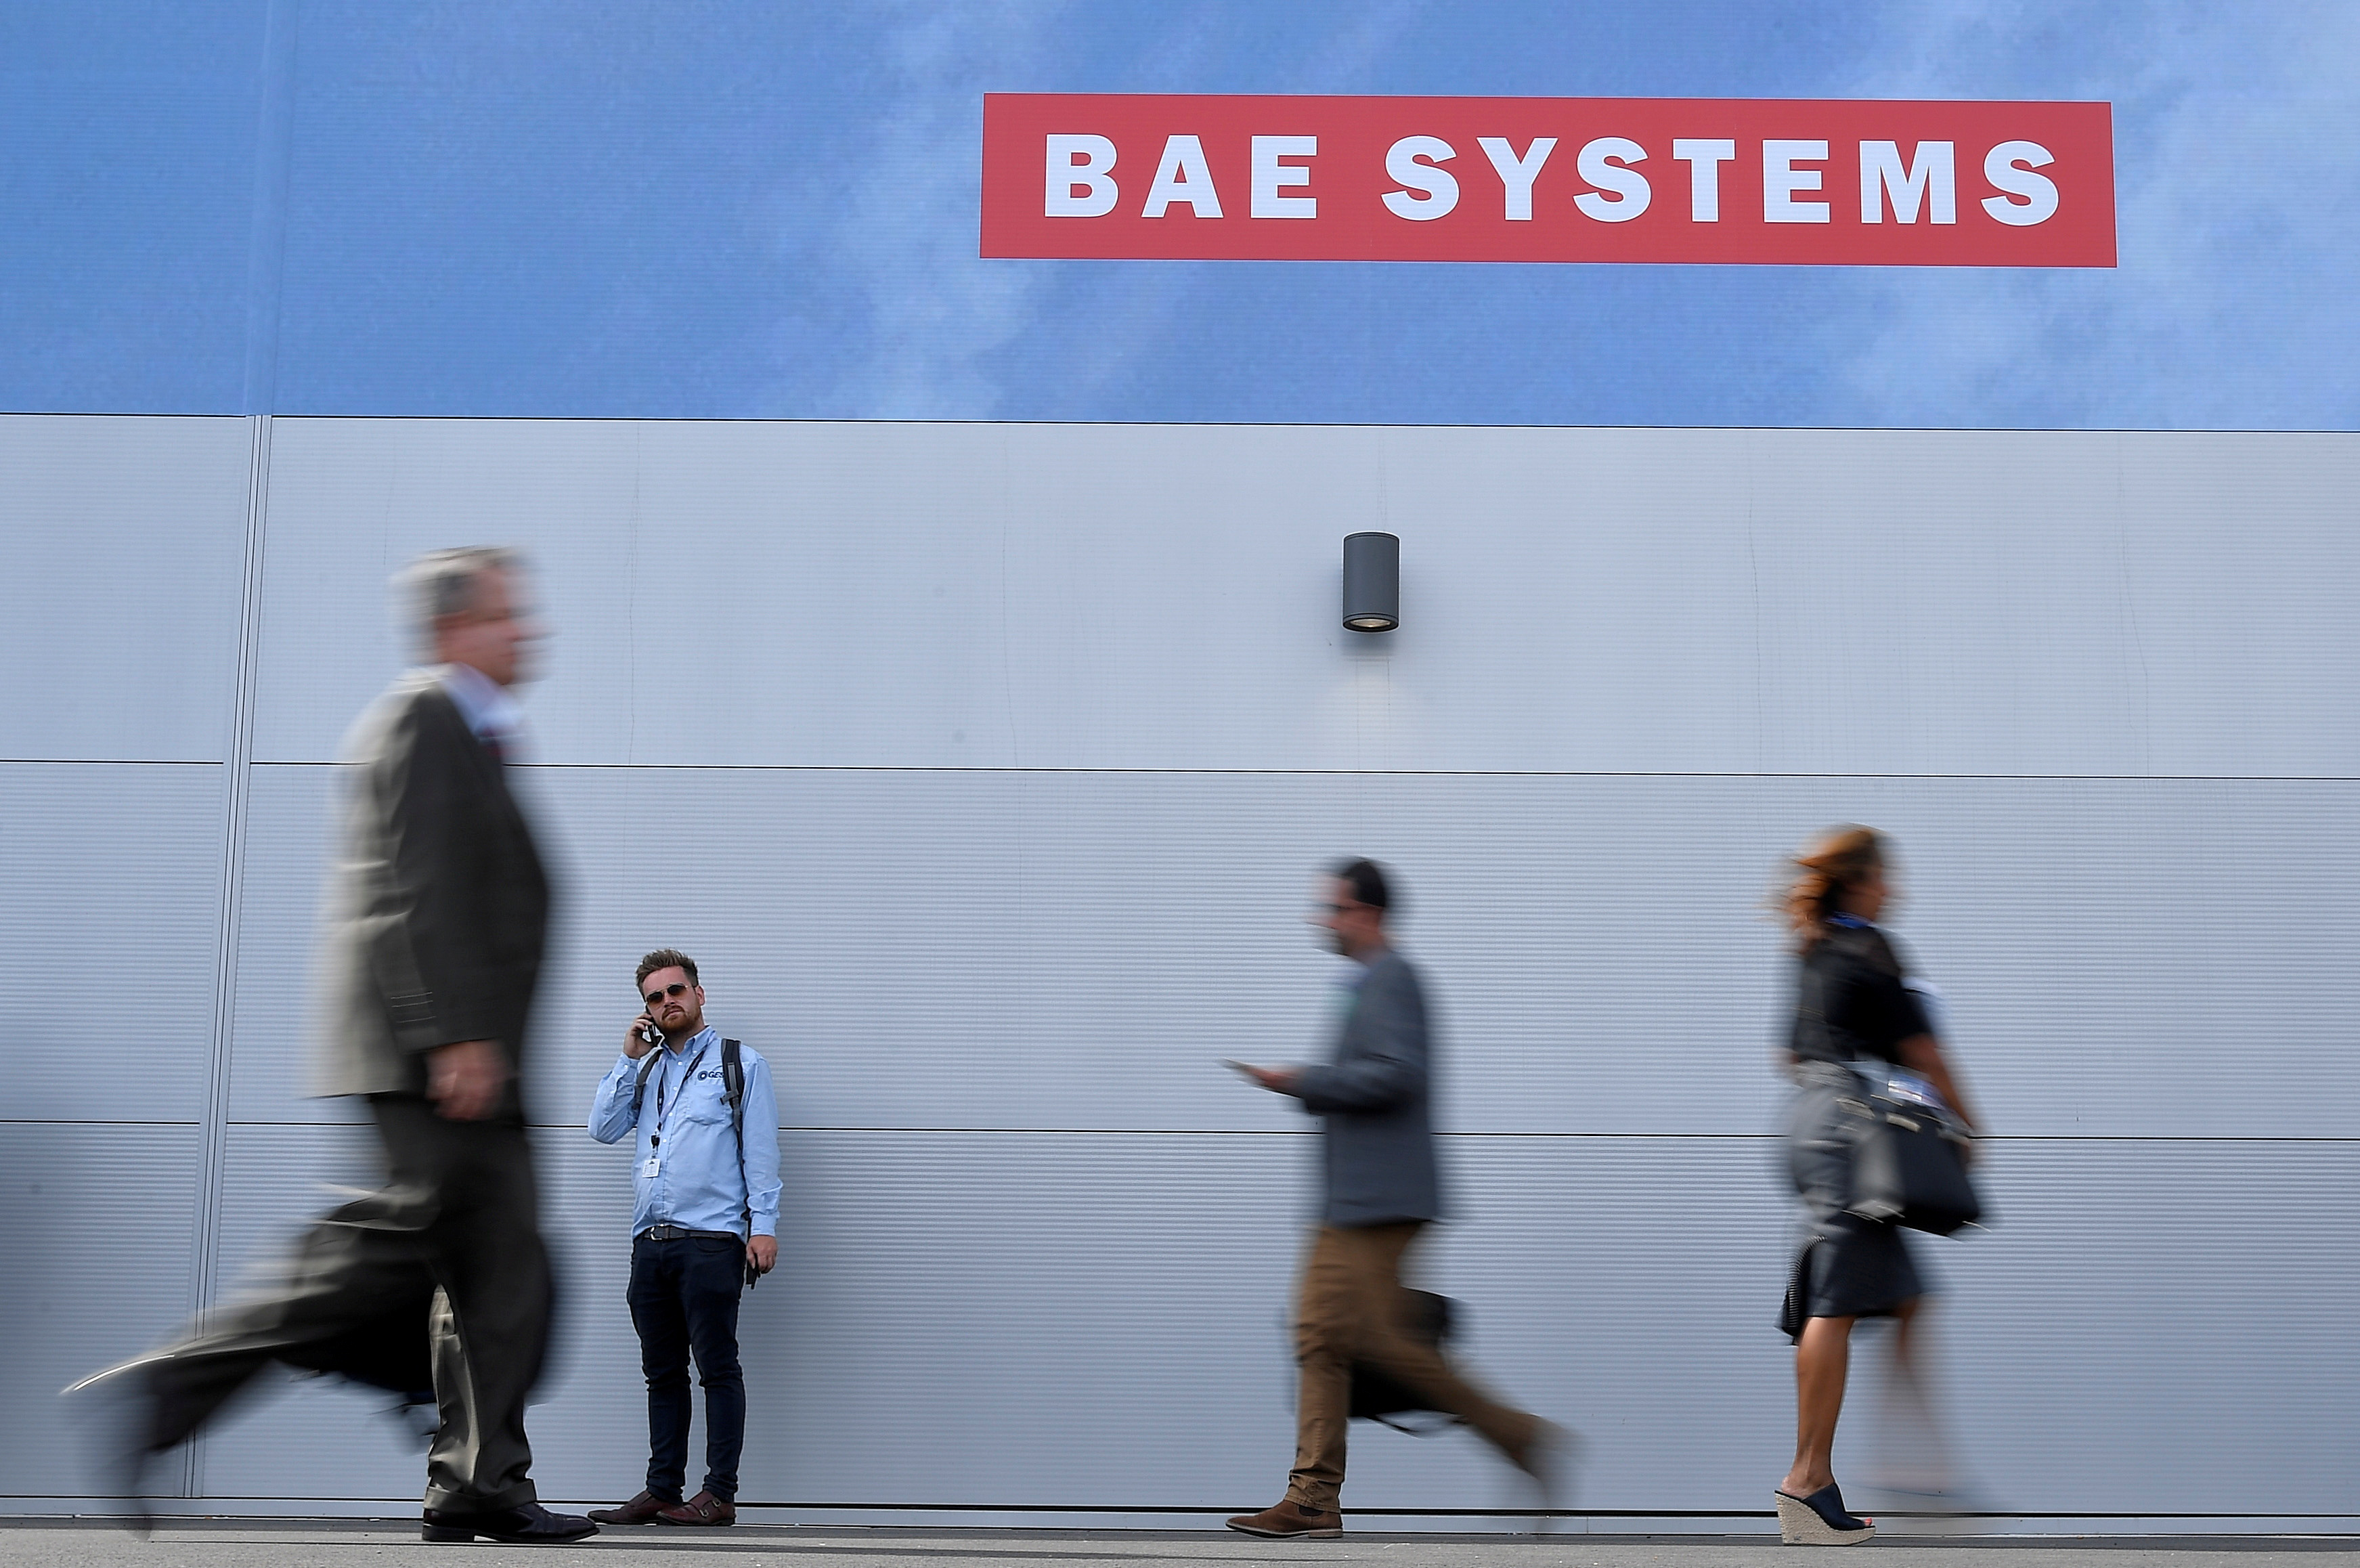 Trade visitors walk past an advertisement for BAE Systems at Farnborough International Airshow in Farnborough, Britain, July 17, 2018. REUTERS/Toby Melville